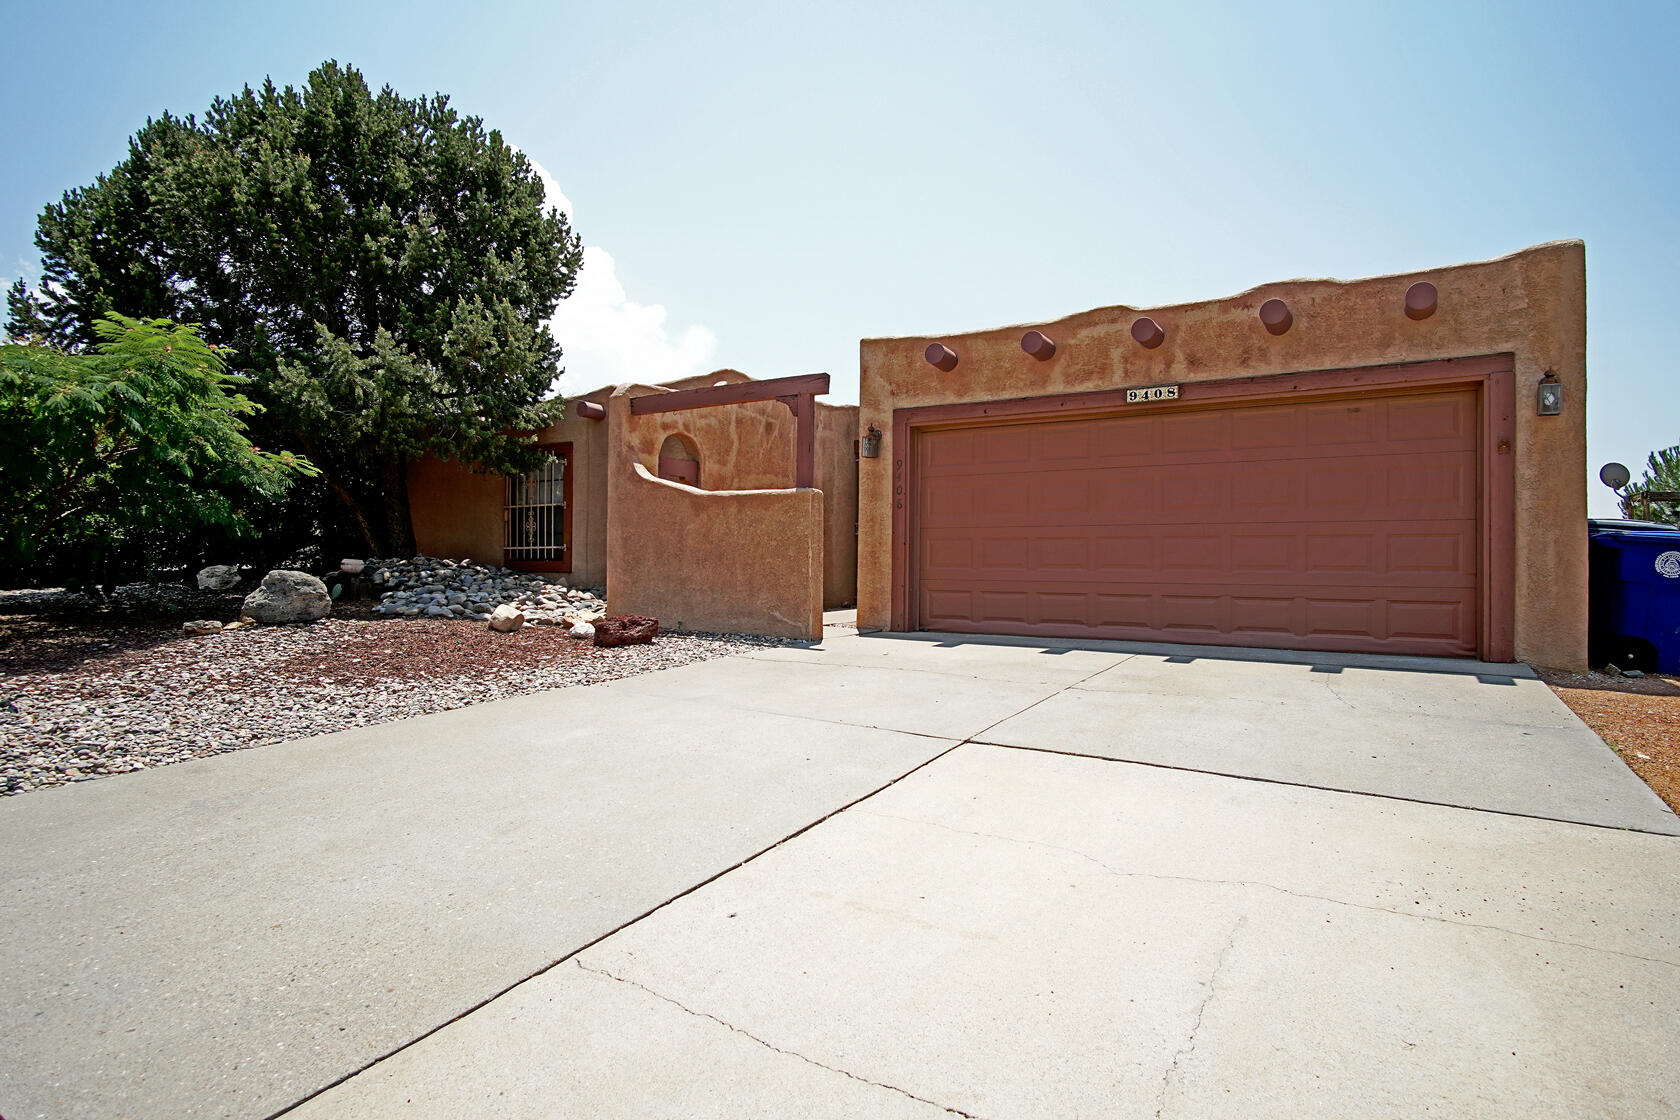 This beautiful Pueblo Style Home offers a warm welcome to authentic New Mexico living! Some unique features of this home are the spacious open floor plan, high ceiling vigas, gorgeous ceramic tile, and a bar-top lounge area. The fireplace in the main living space creates the perfect ambiance with its brick exterior and extended sitting space.  This home also offers a stunning, low- maintenance finished backyard with a combination of xeriscape and artificial turf as well two-storage sheds. Located less than 10 minutes to both I-25 and I-40, this home makes for a very convenient commute to many desirable Albuquerque destinations!